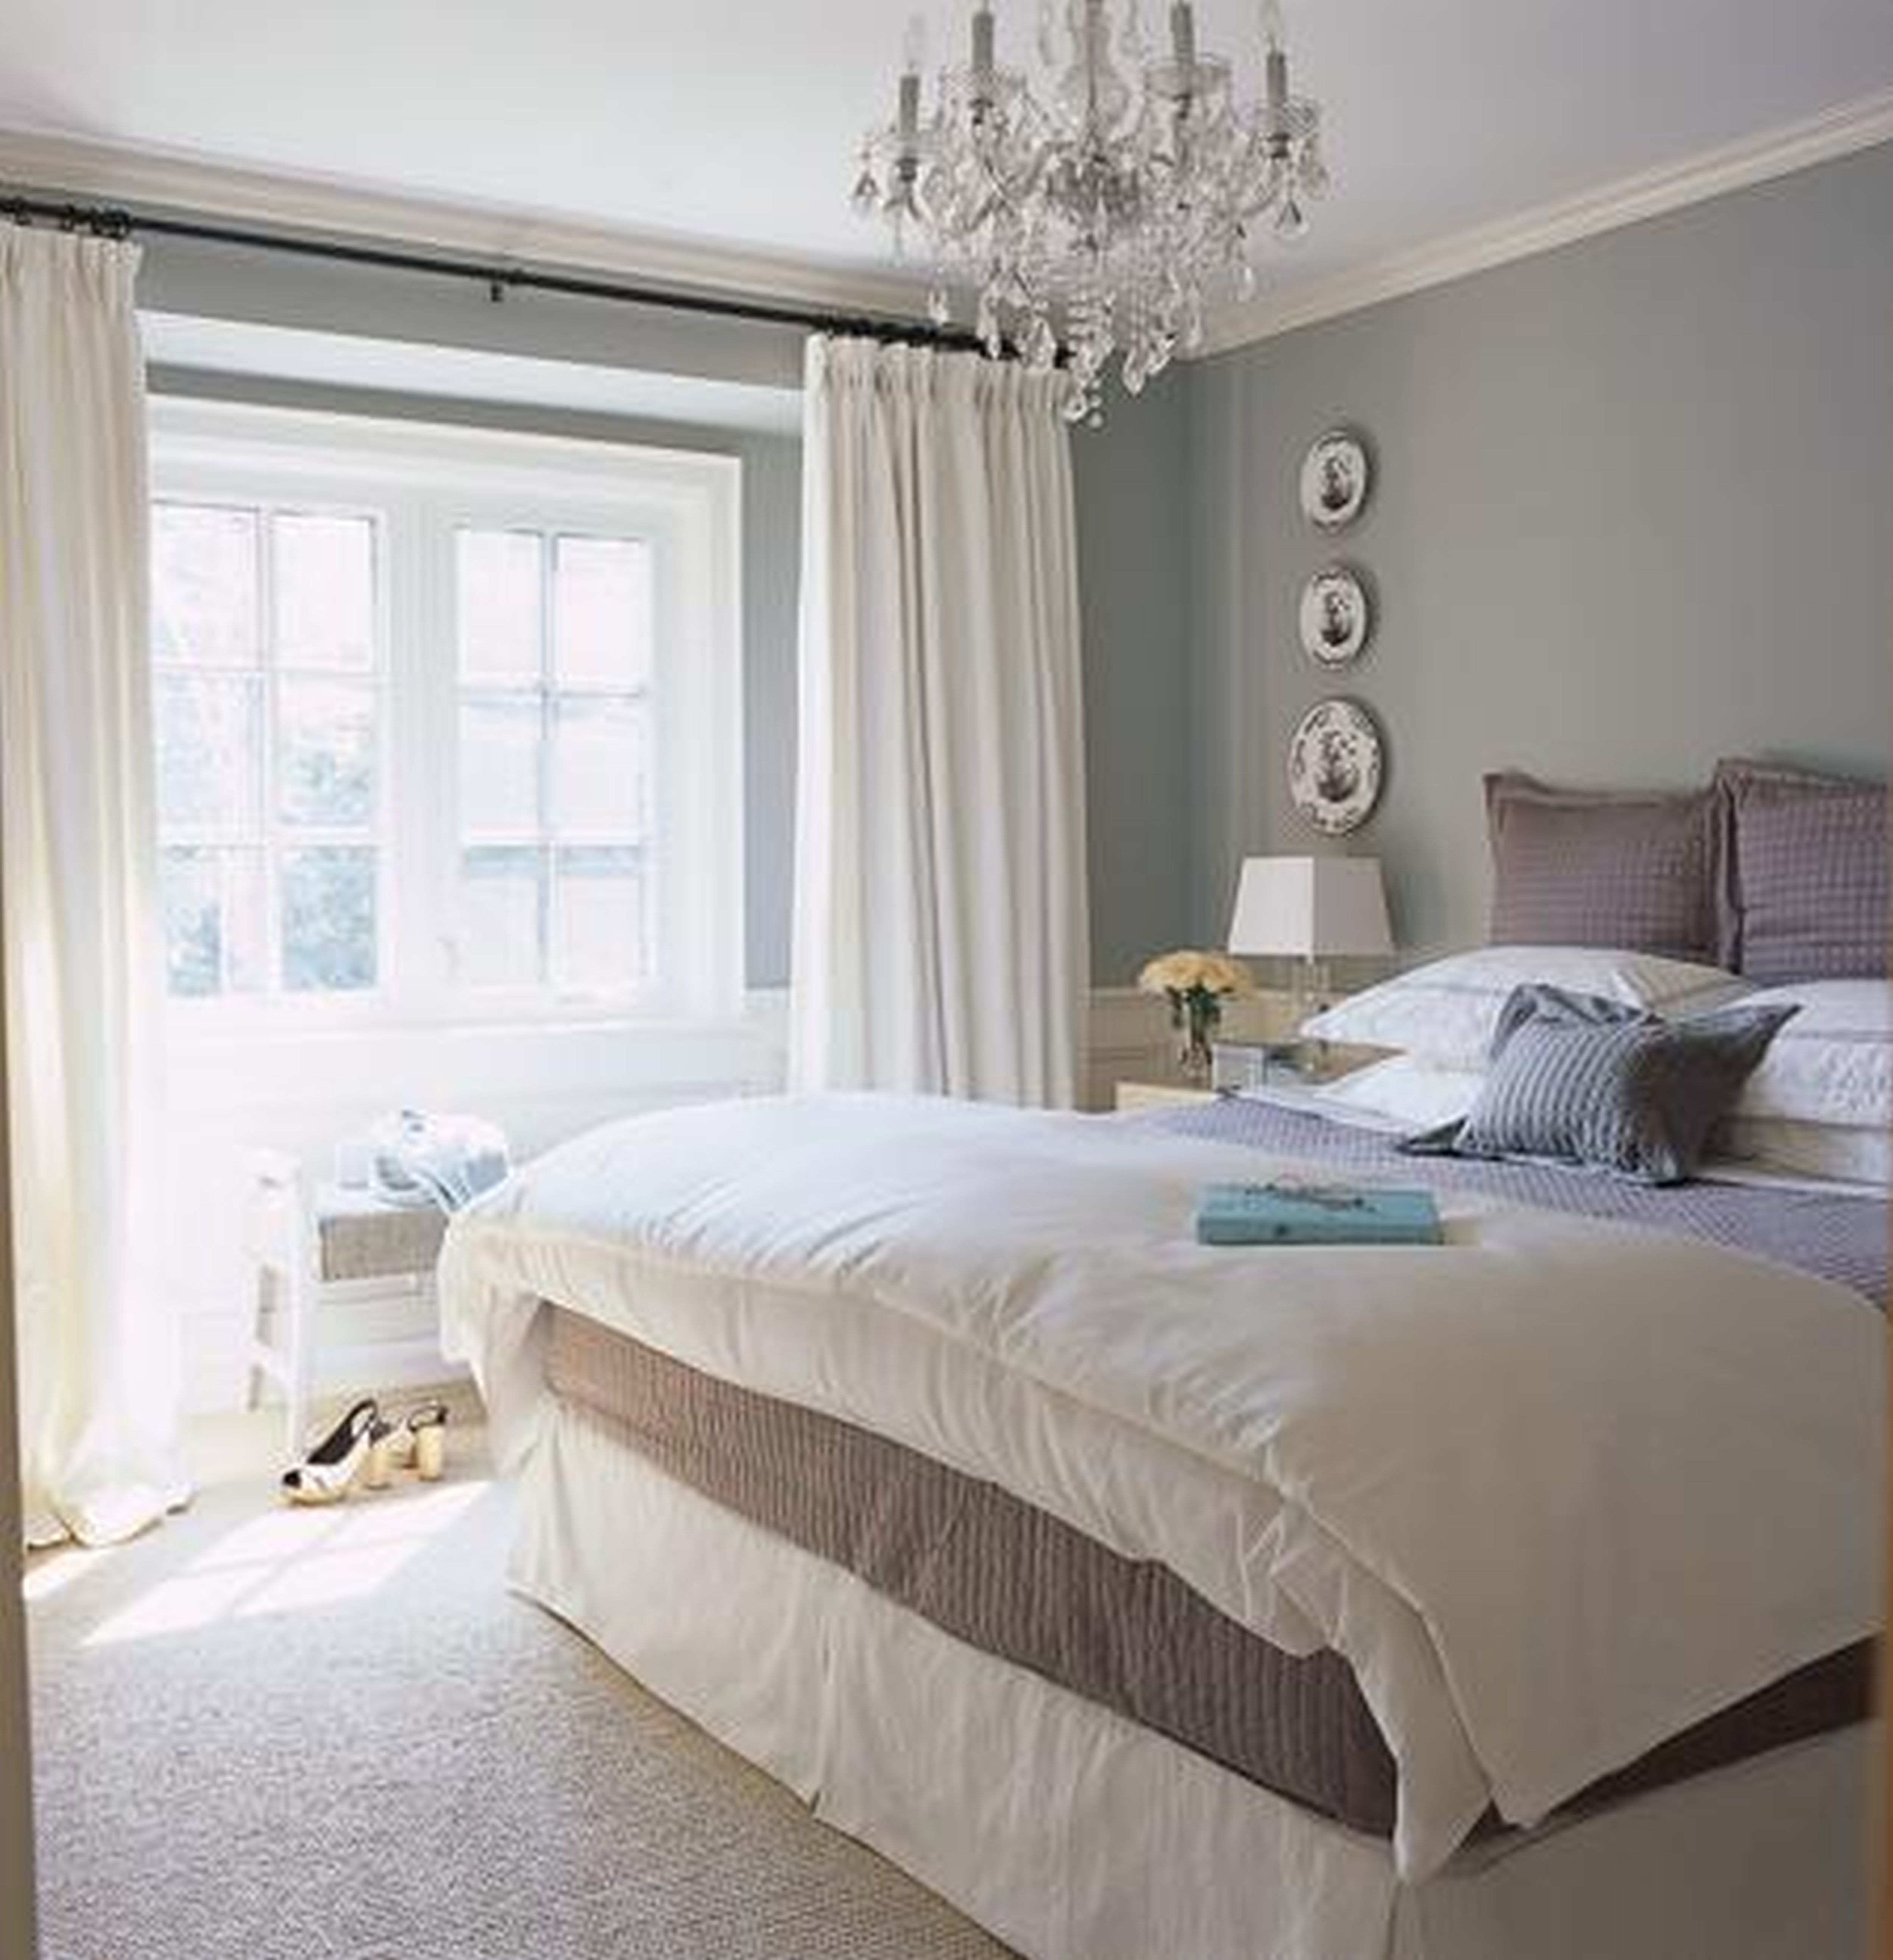 Bedroom Inspiration Grey Bed Design Ideas For A Small Bedroom Lydia 39s Interiors